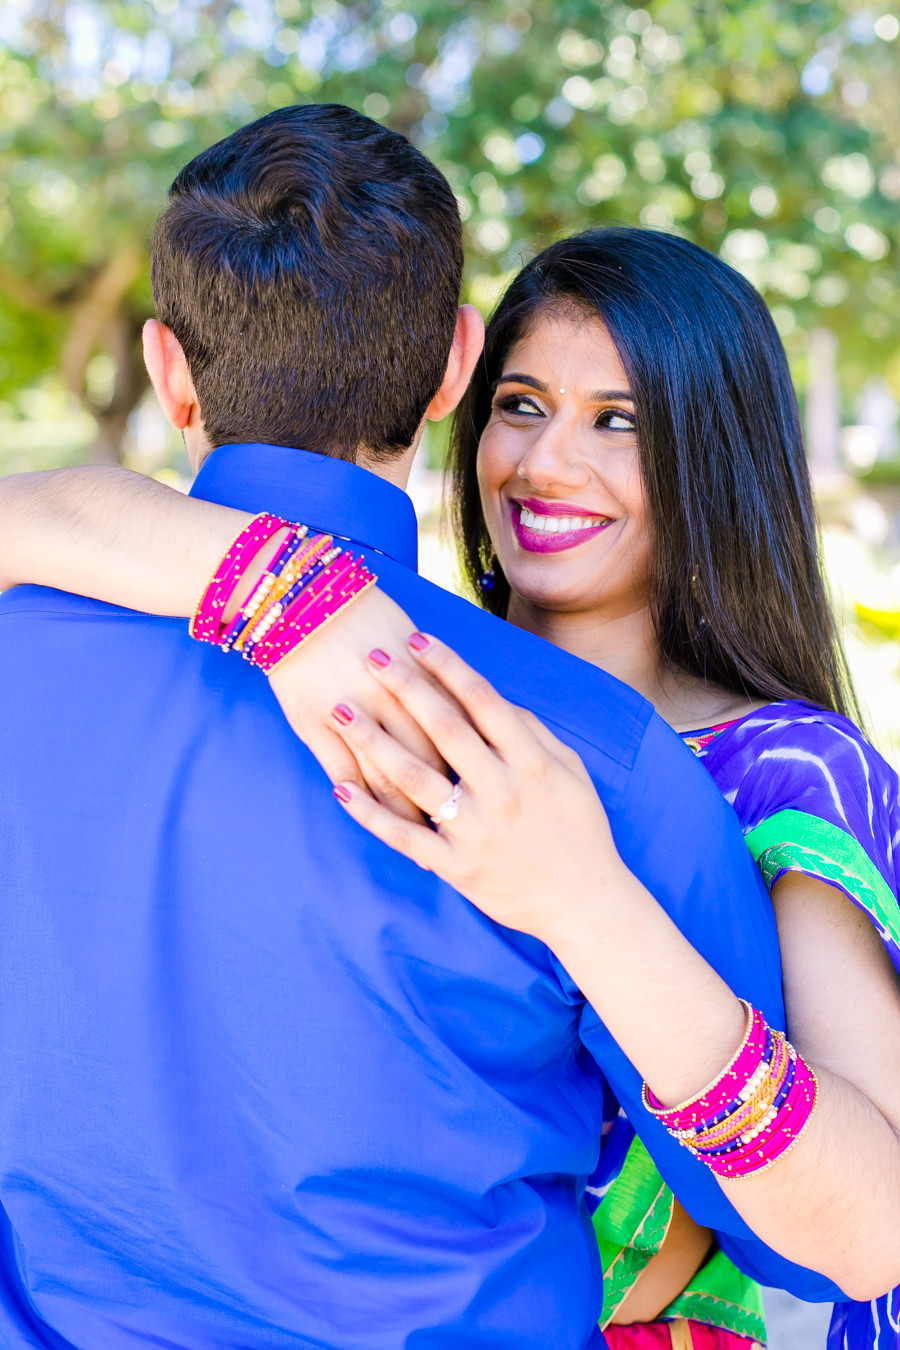 modern indian engagement photoshoot with traditional indian pink and white sari   vizcaya museum and gardens, miami